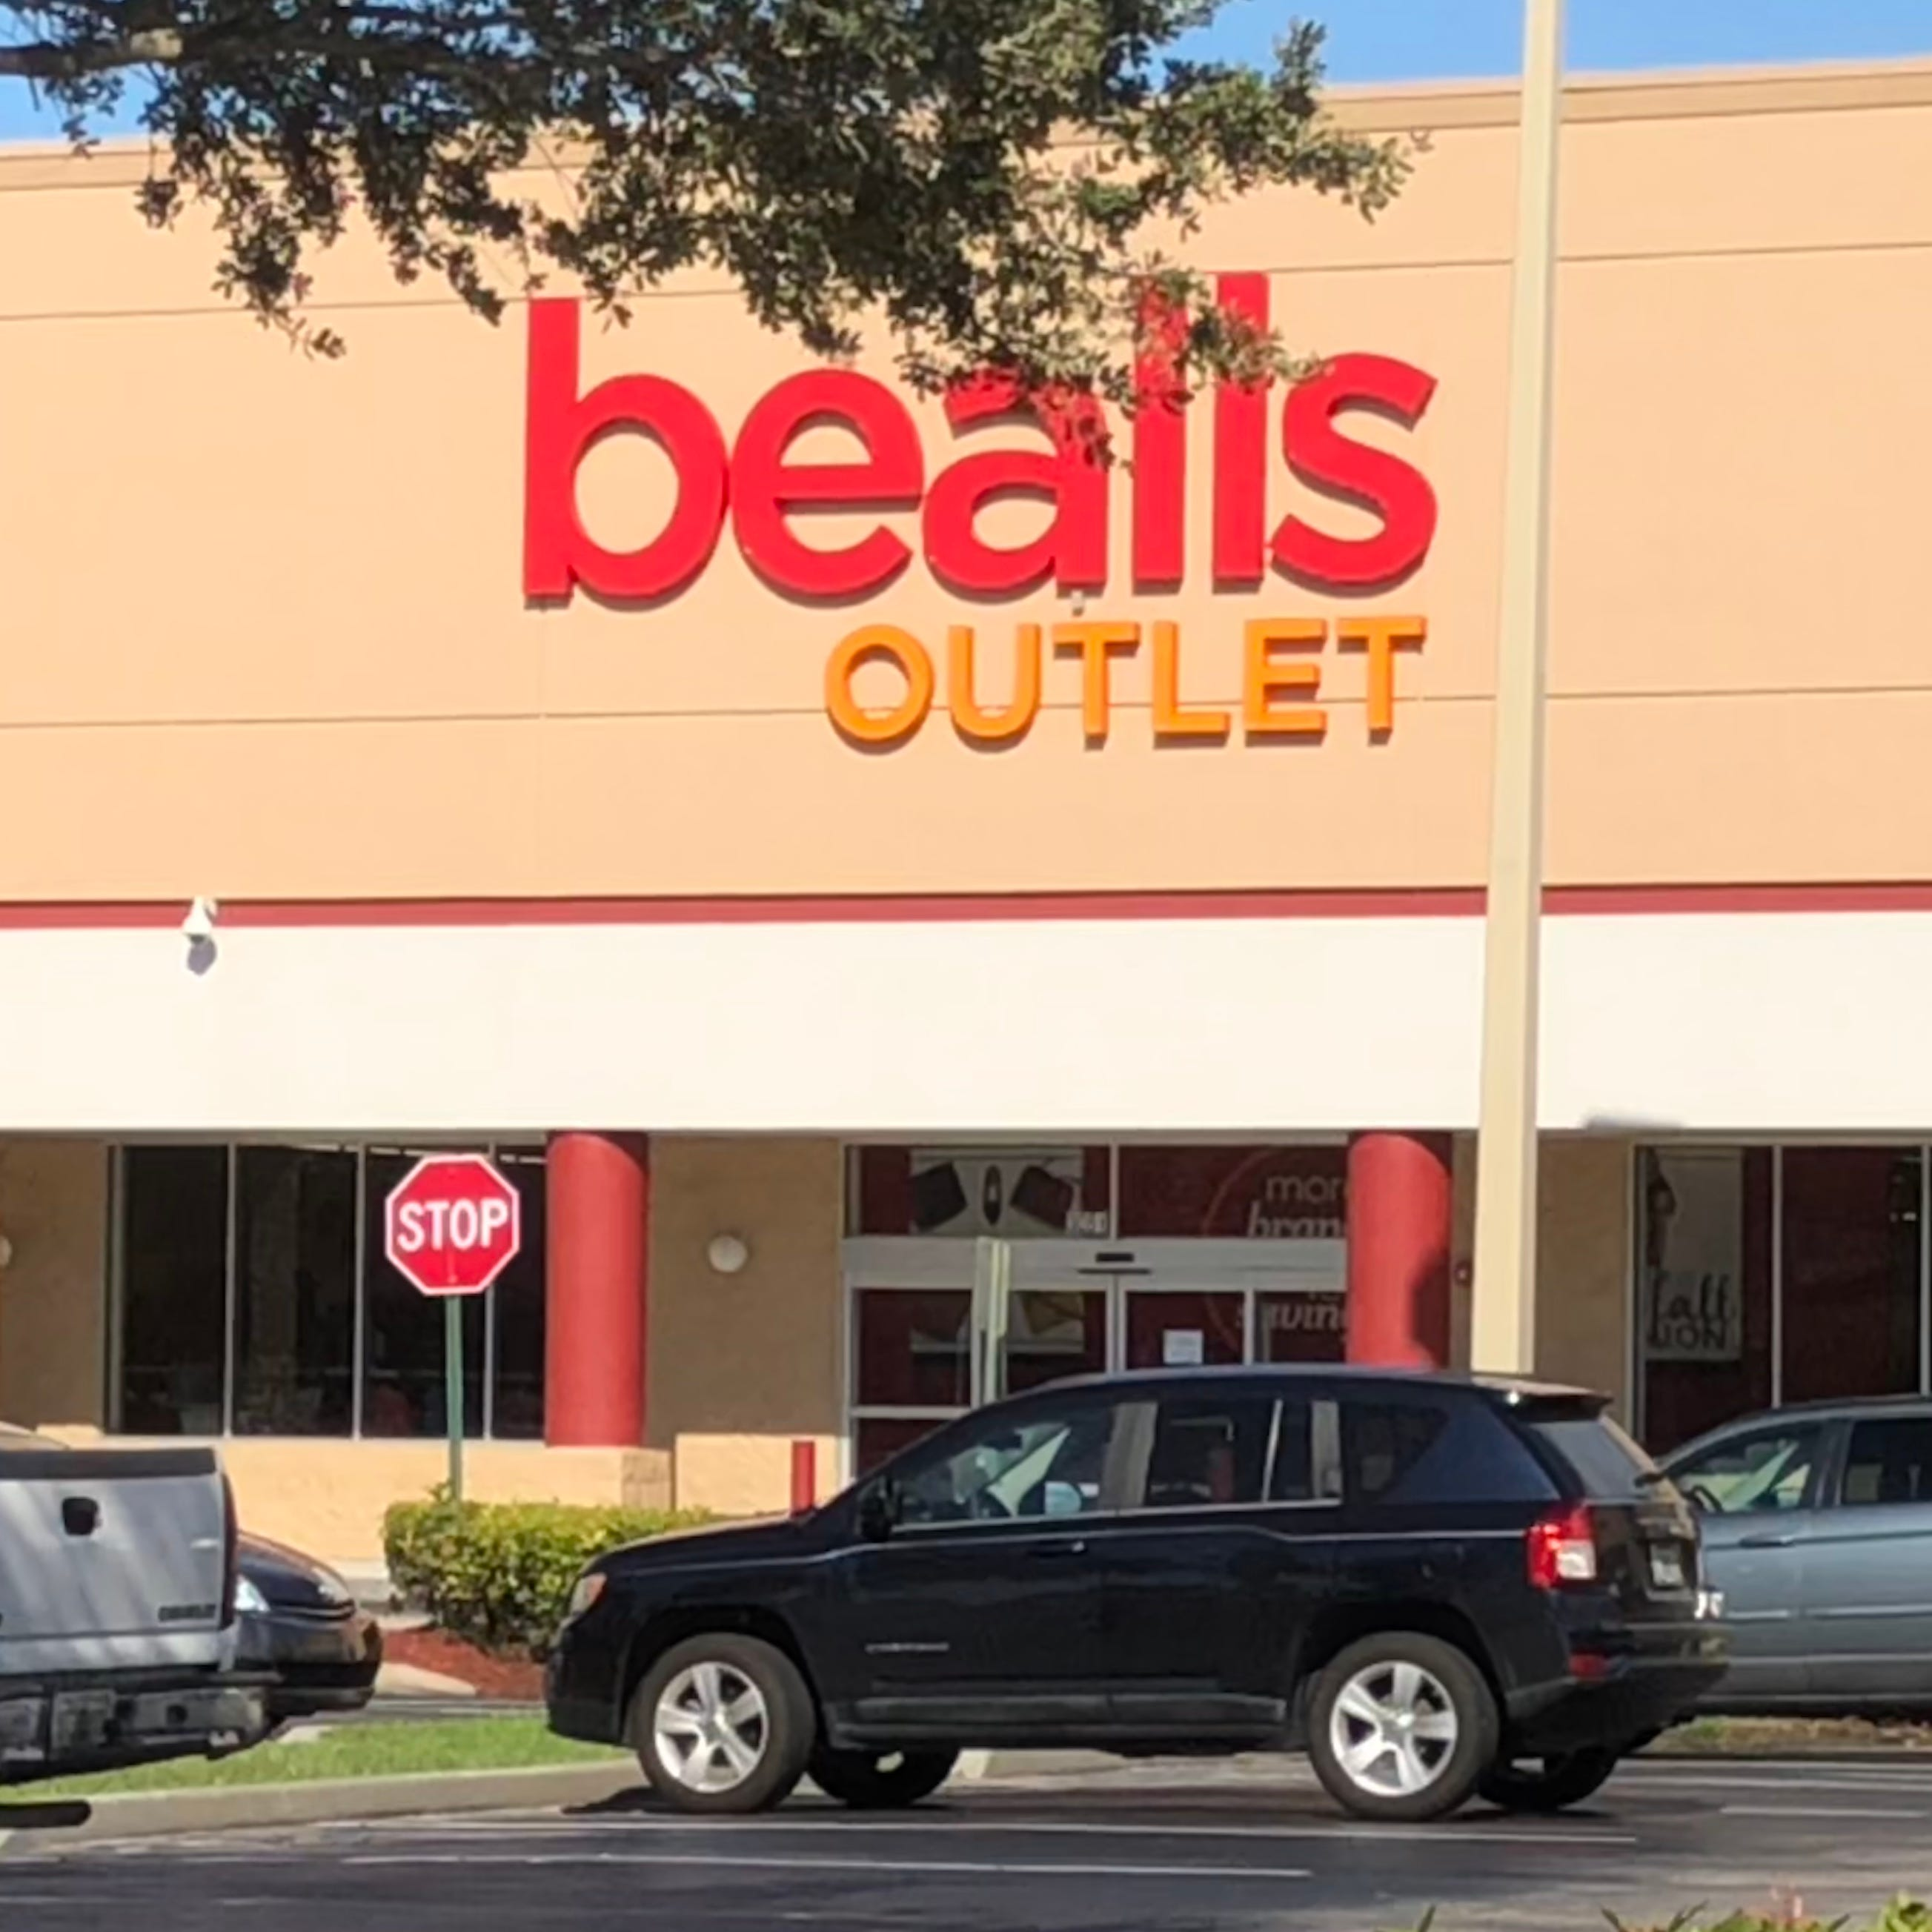 Bealls Outlet's Jensen Beach grand opening brings four days of mystery coupons, giveaways